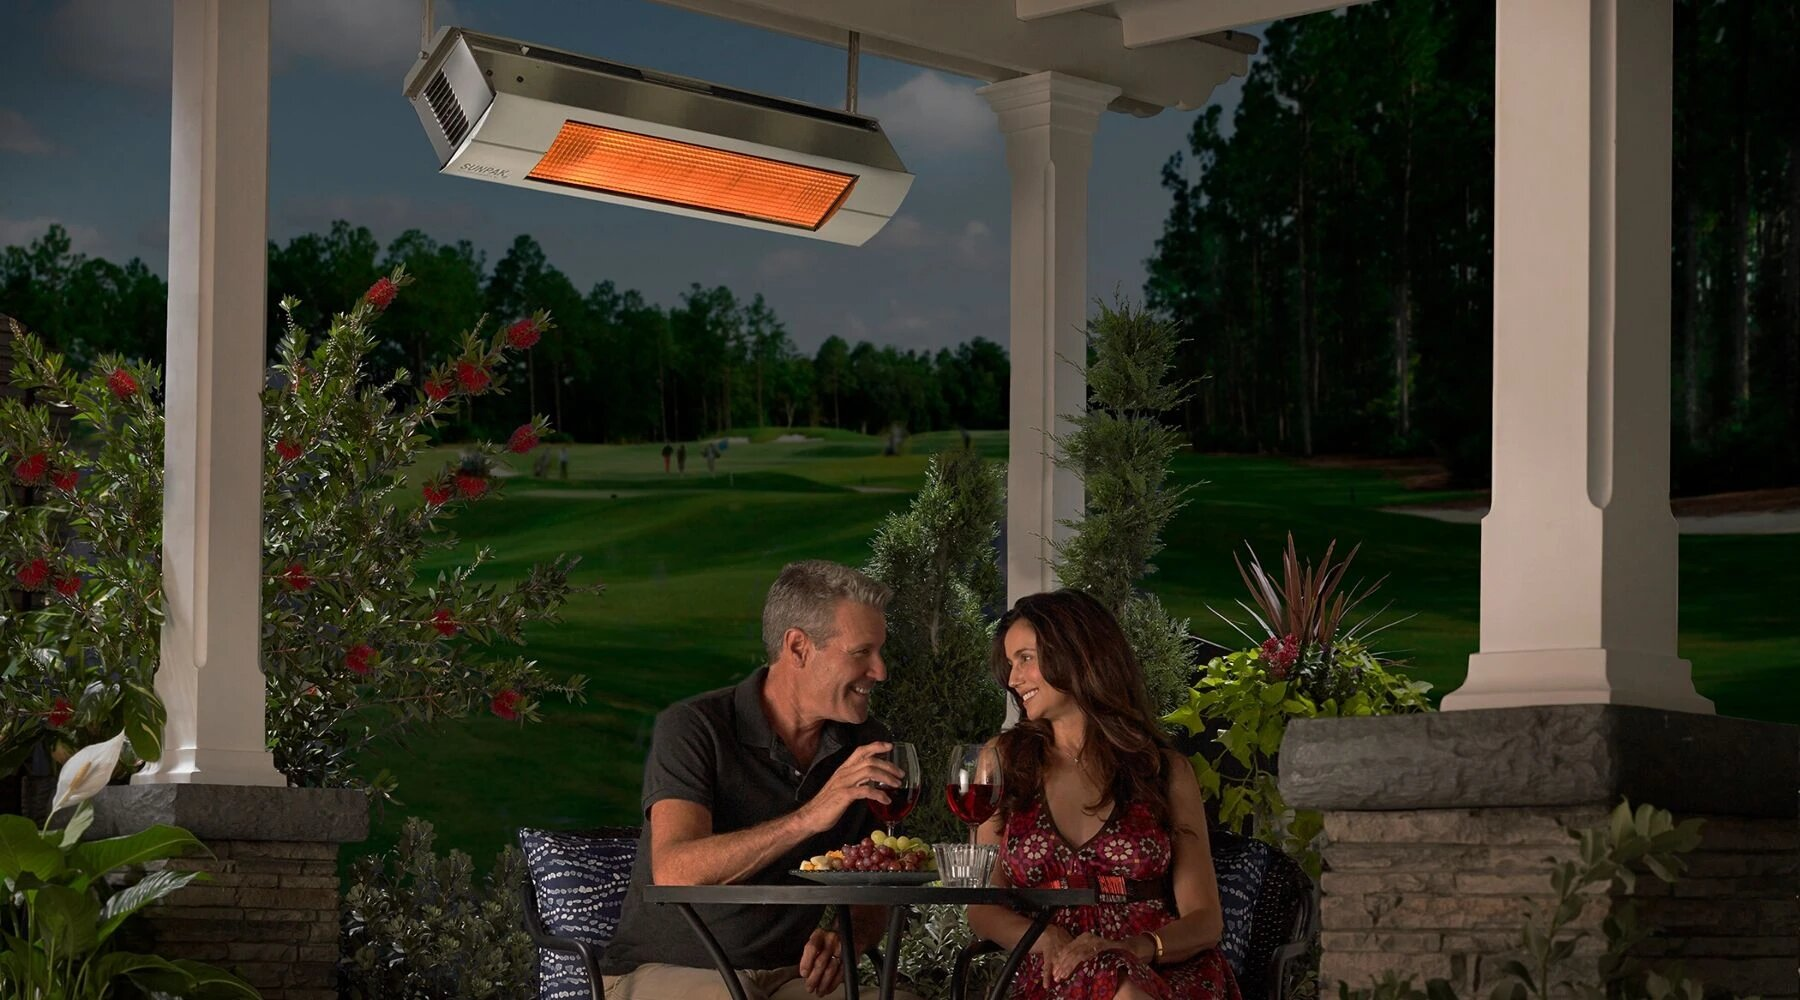 Overhead Gas Patio Heaters